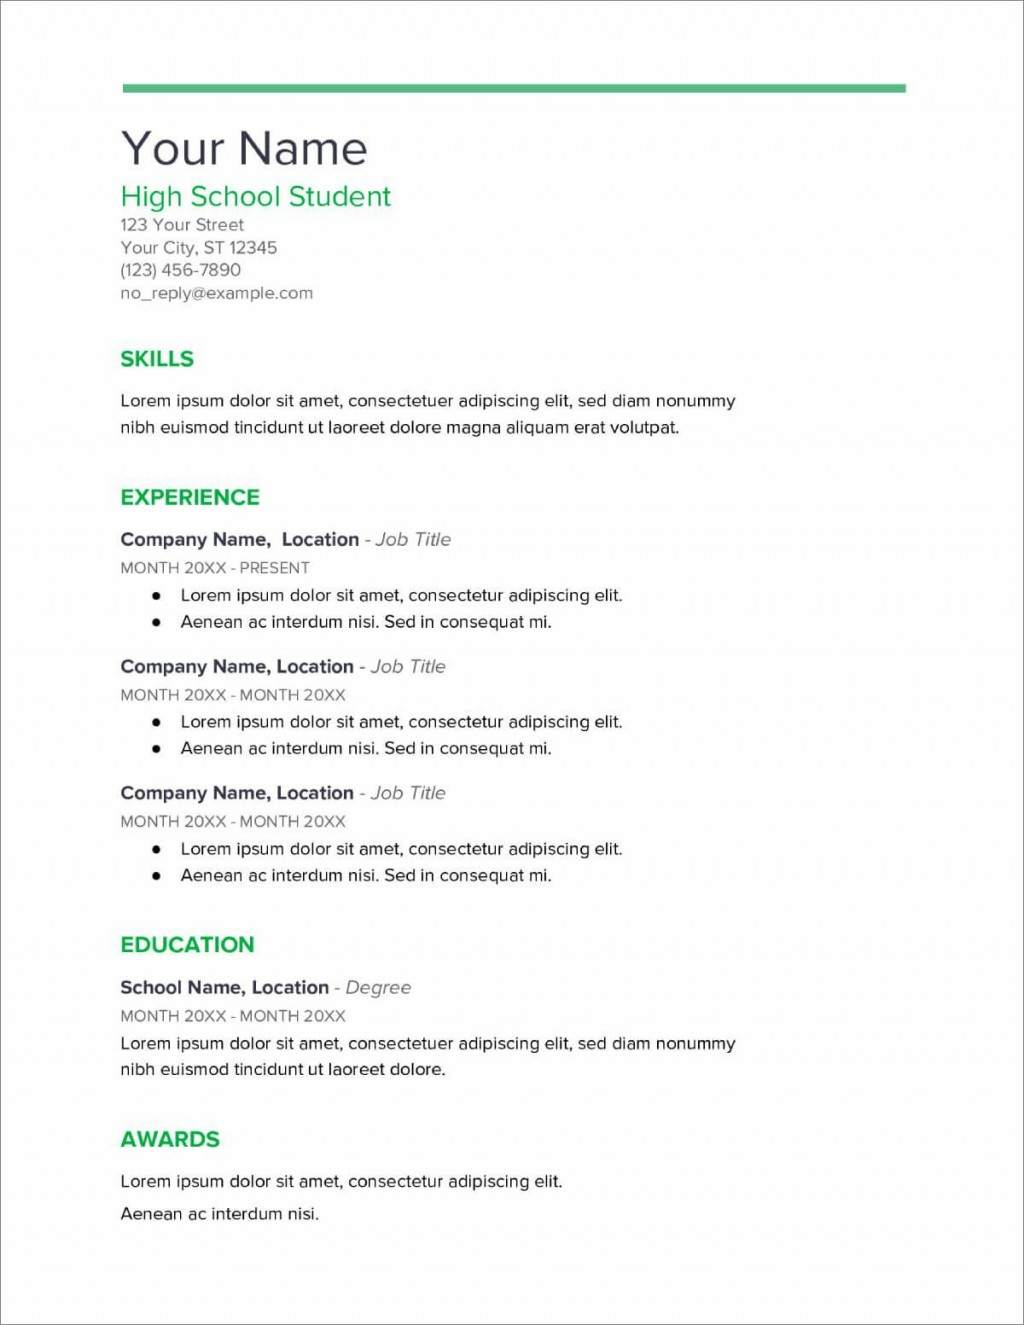 007 Rare Resume Template High School Student Example  Students Easy For Curriculum Vitae Format Pdf Free DownloadableLarge